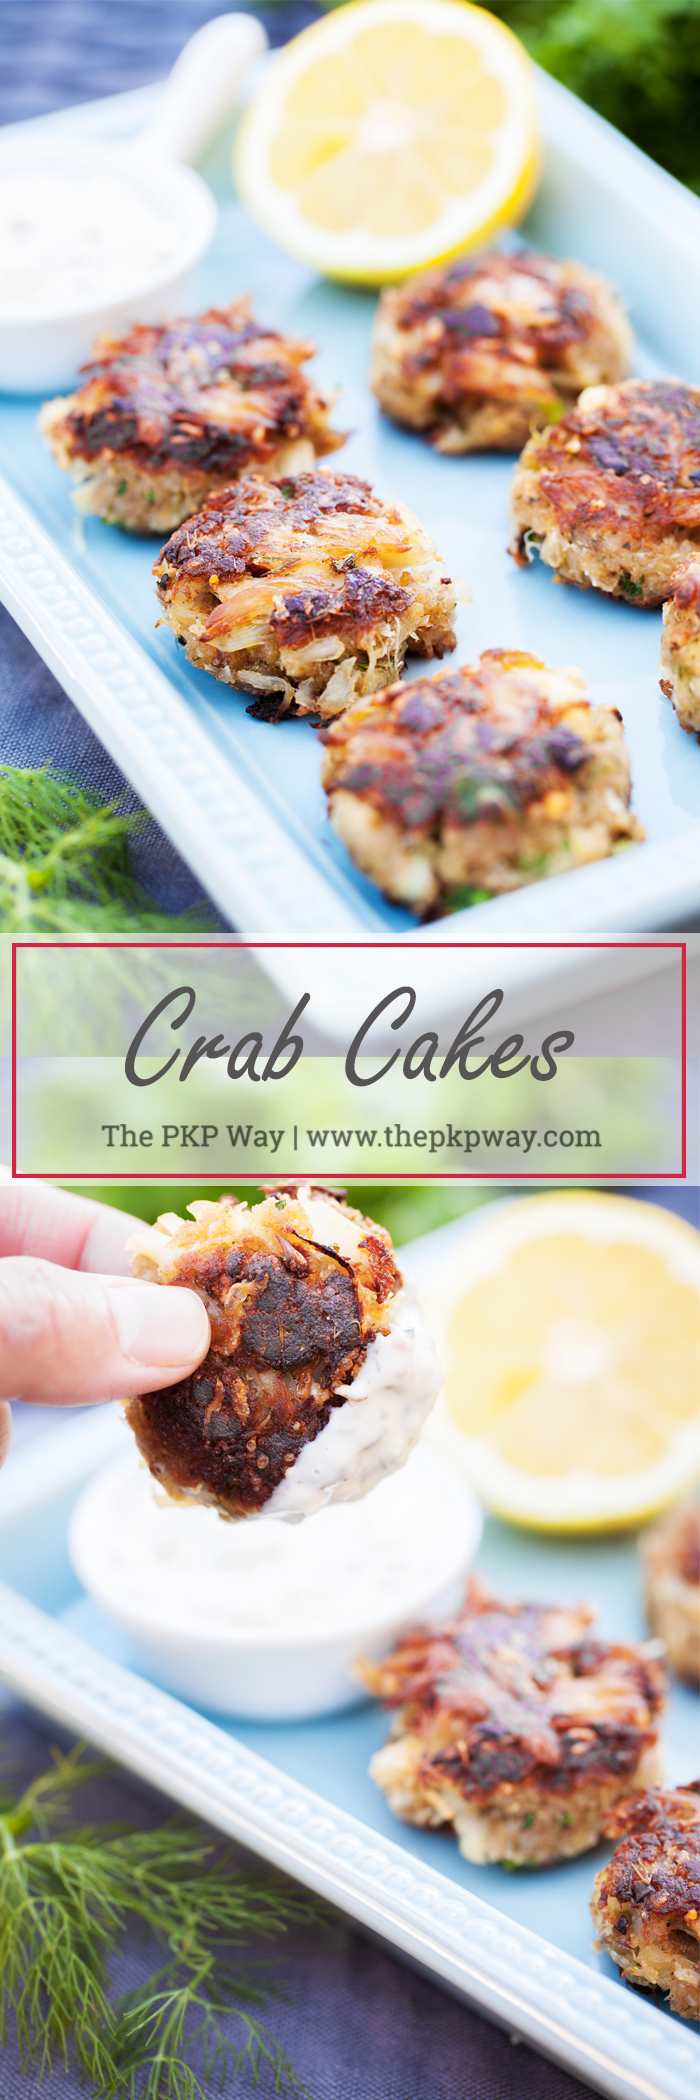 Pan fried Crab Cakes with succulent lump crab meat and fresh herbs.